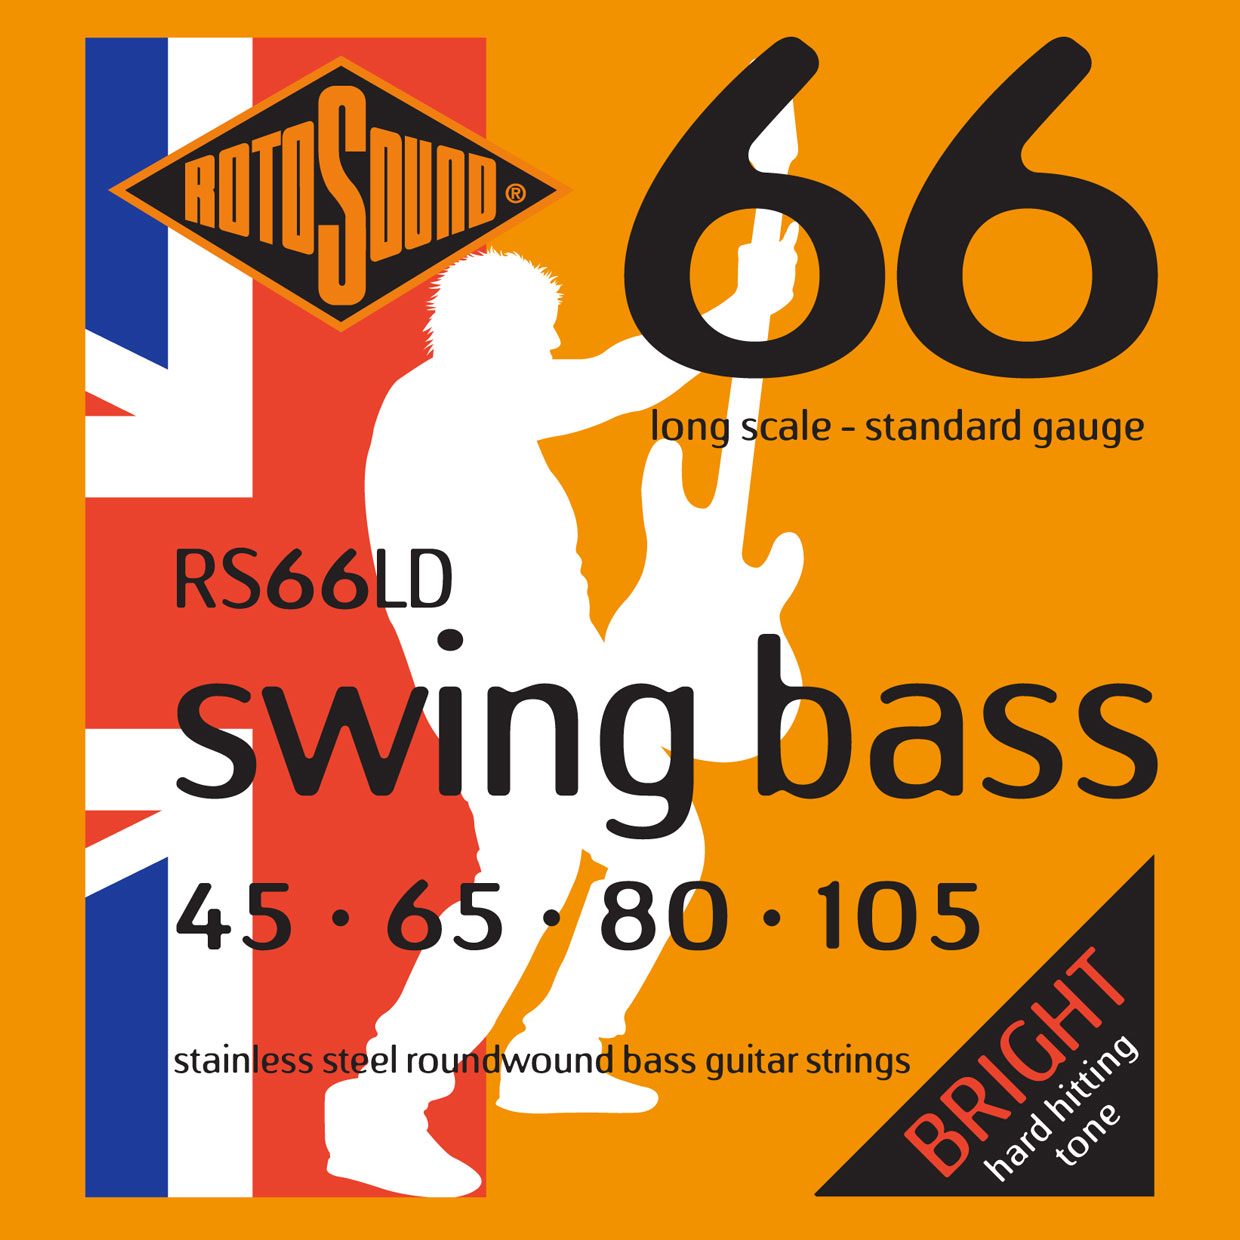 SWING BASS 66 RS66LD STAINLESS STEEL 45105